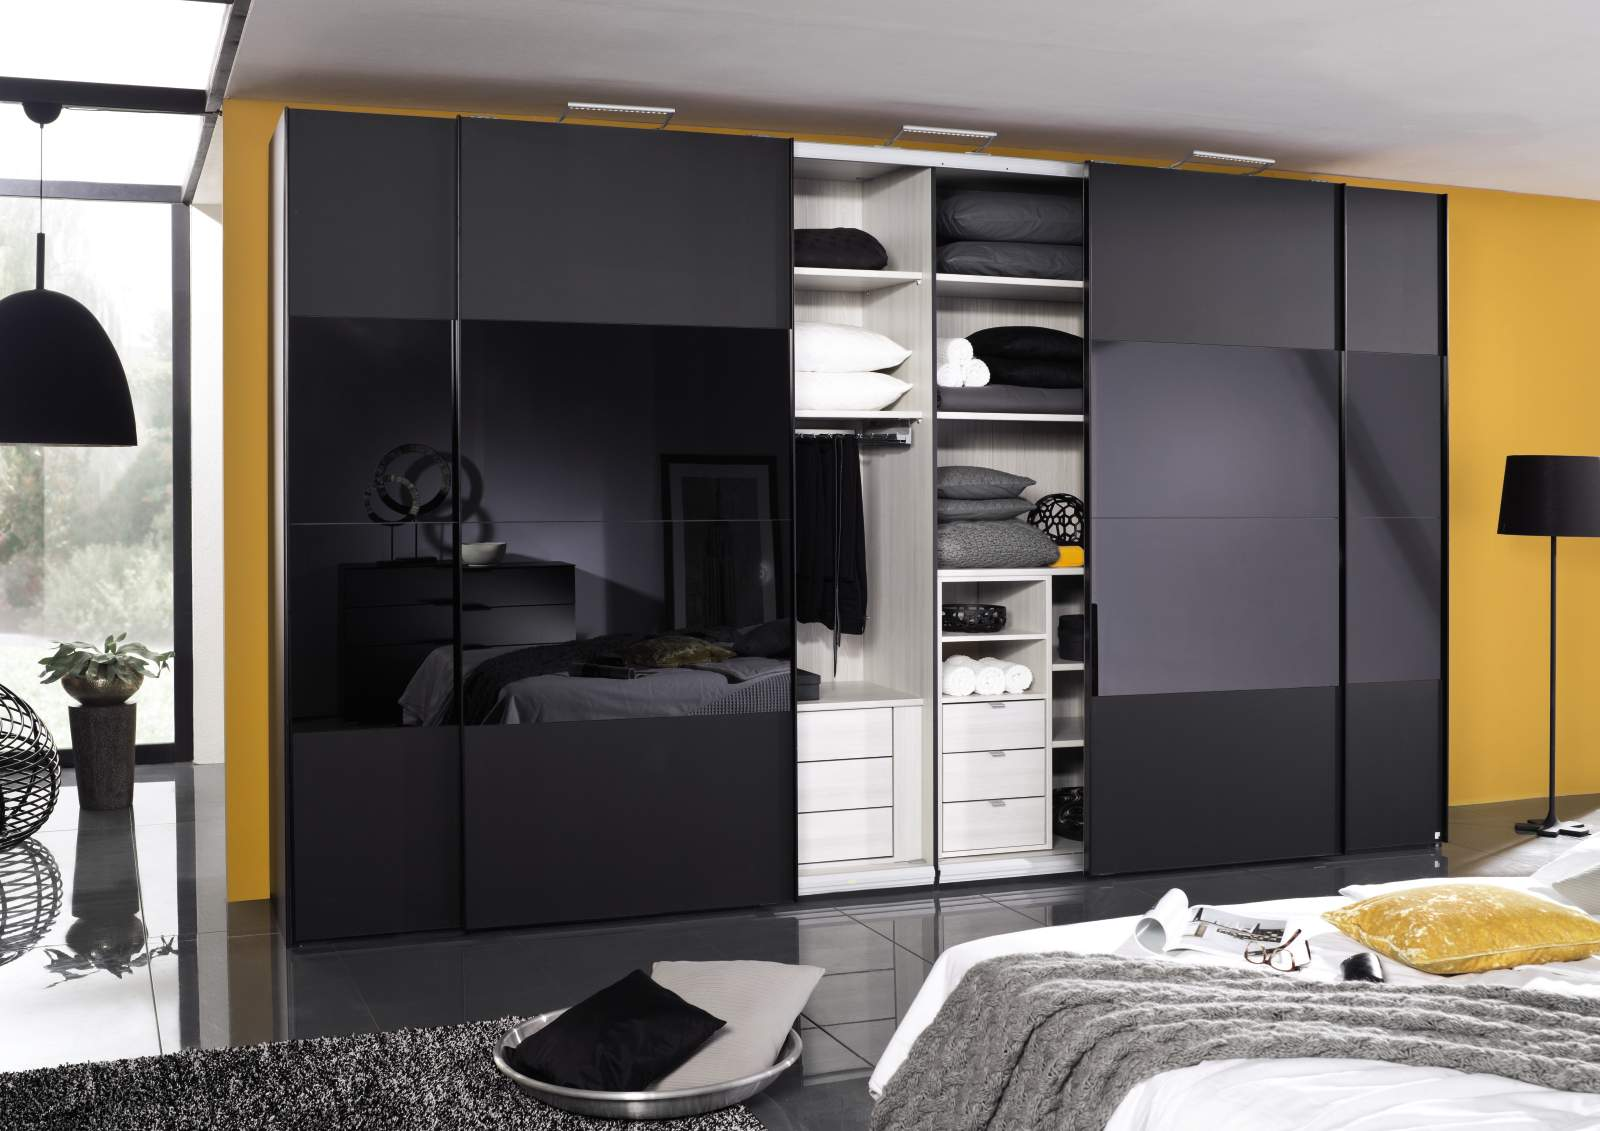 schr nke schranksysteme x markt einsiedler. Black Bedroom Furniture Sets. Home Design Ideas